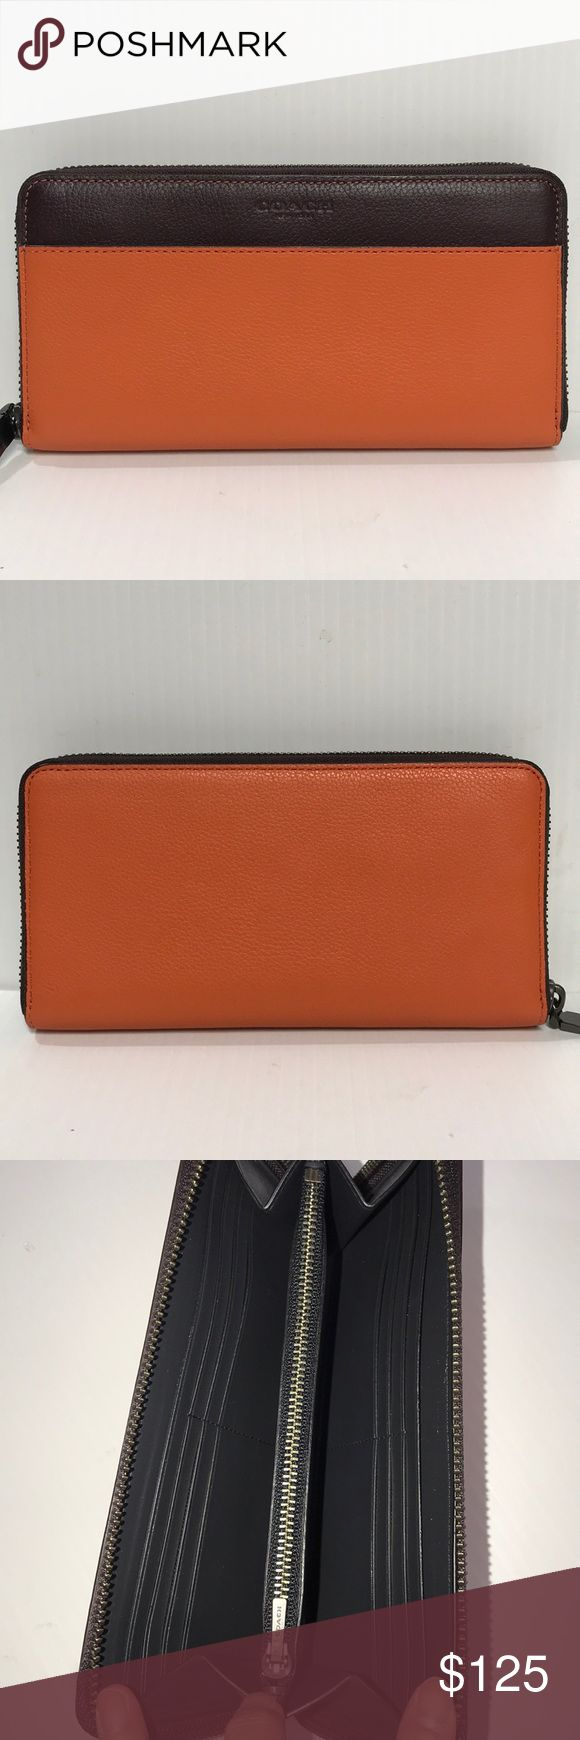 """NEW Coach Accordion wallet in Colorblock Leather Coach zip around wallet Smooth calf leather 12 credit card slots Full-length bill compartments  Zip coin pocket Zip around closure Outside open pocket Fits all phone sizes up to an iPhone 7 & Samsung S7 Edge Size measurements: 7.5""""L x 4""""H Coach Bags Wallets"""